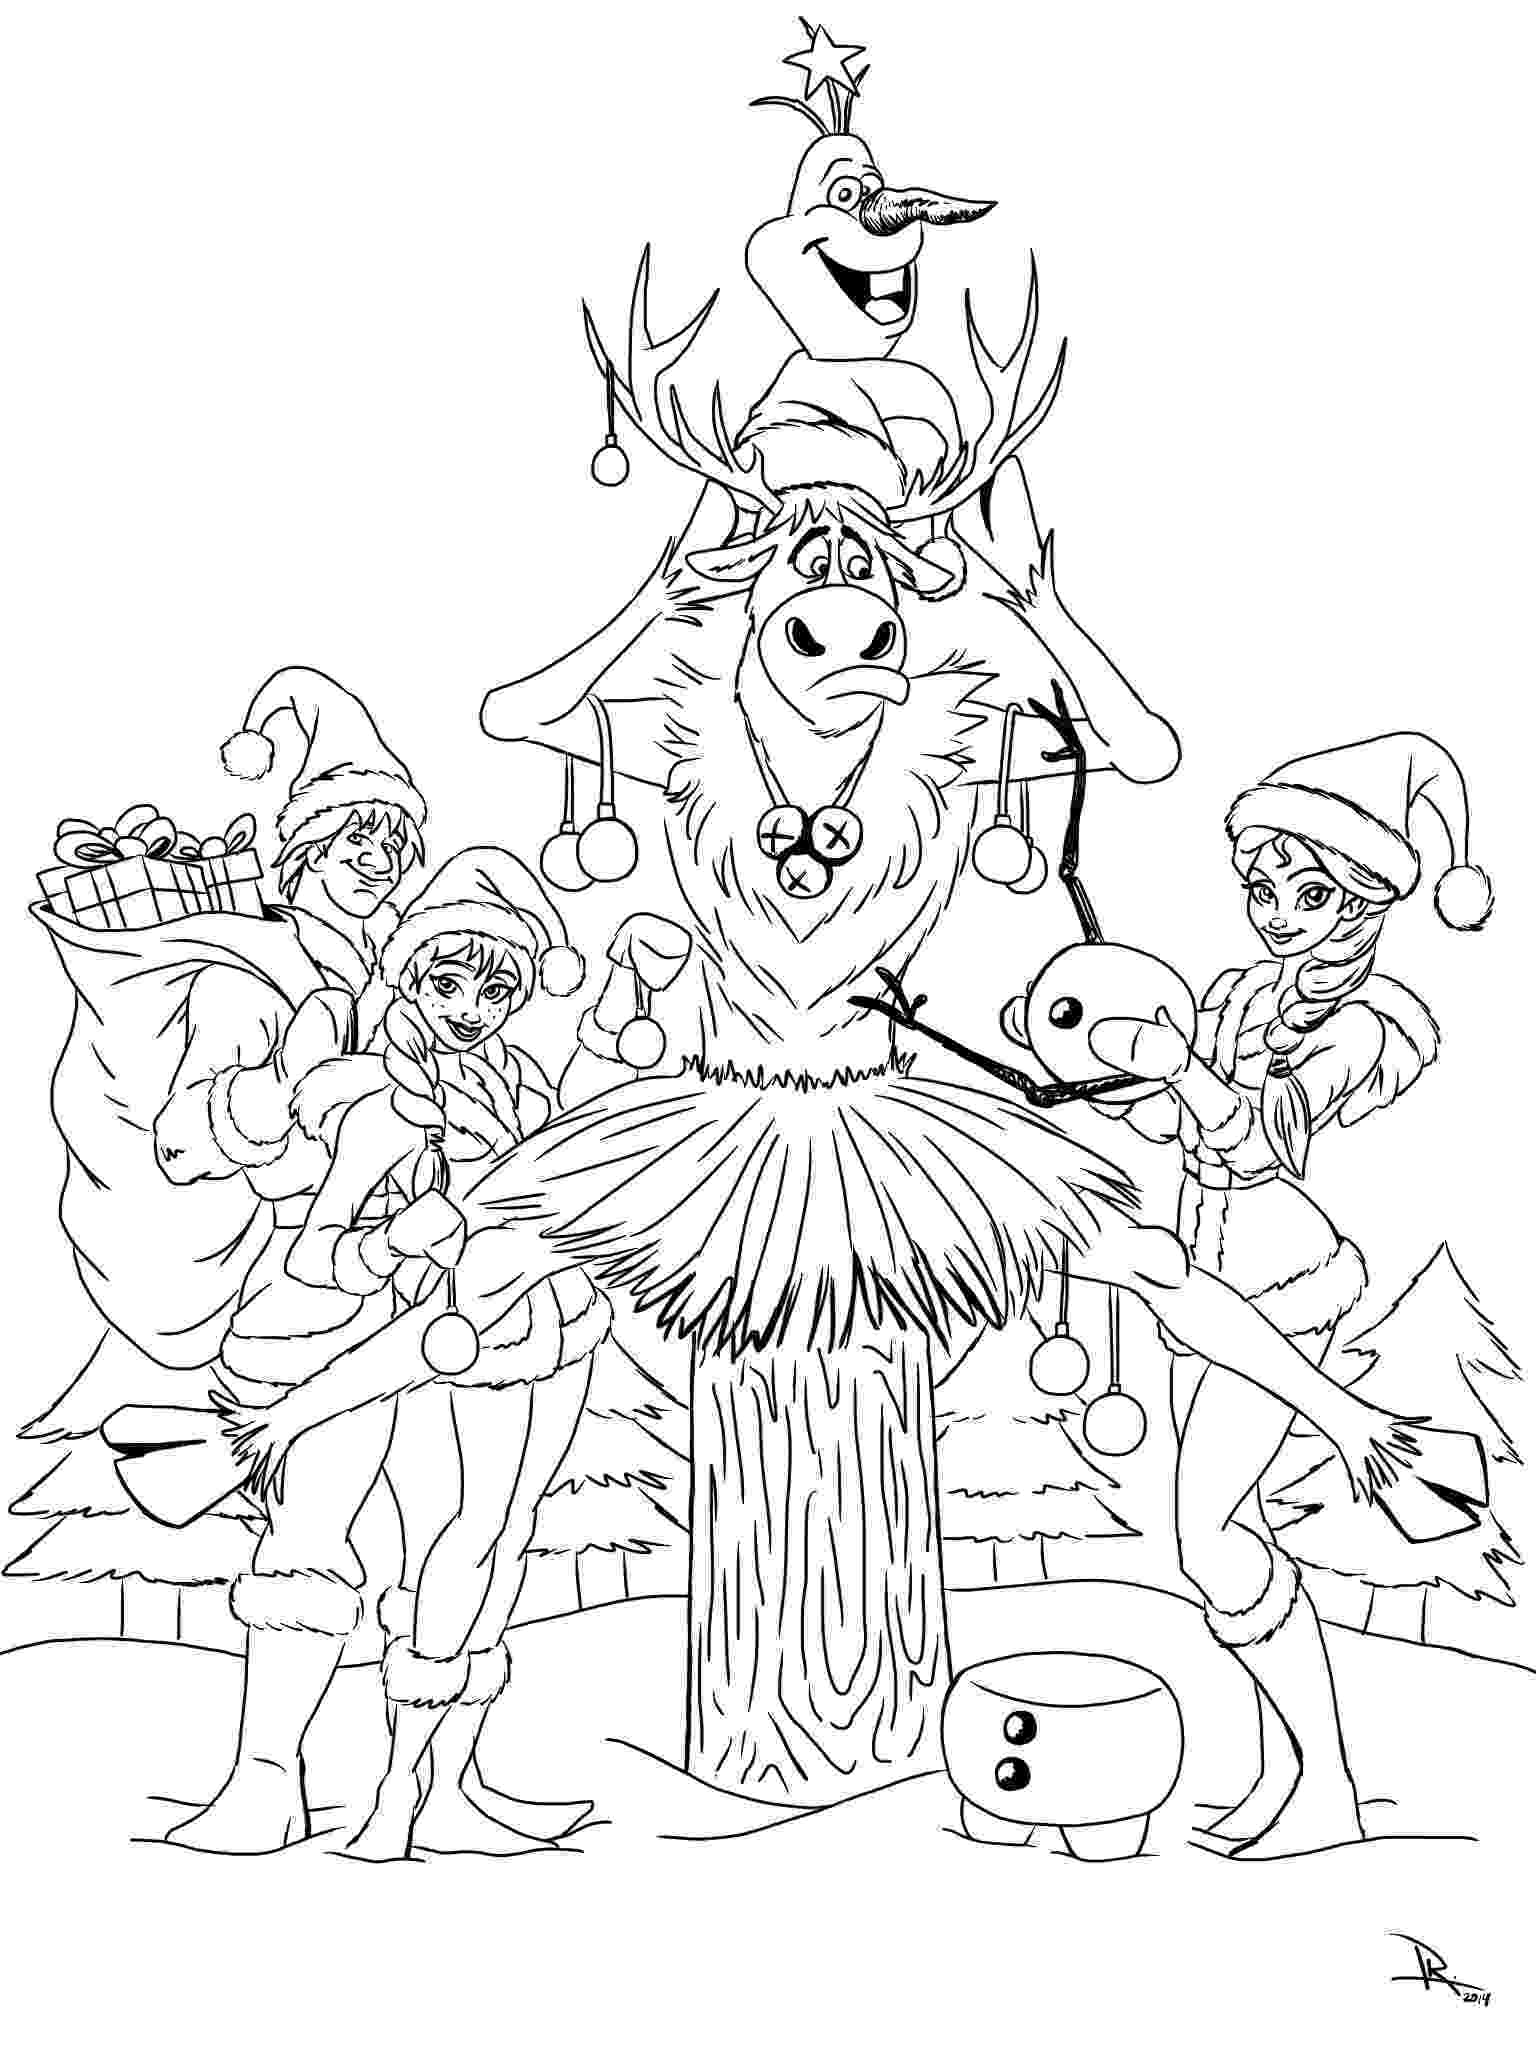 pictures to color frozen free frozen printable coloring activity pages plus free pictures frozen color to